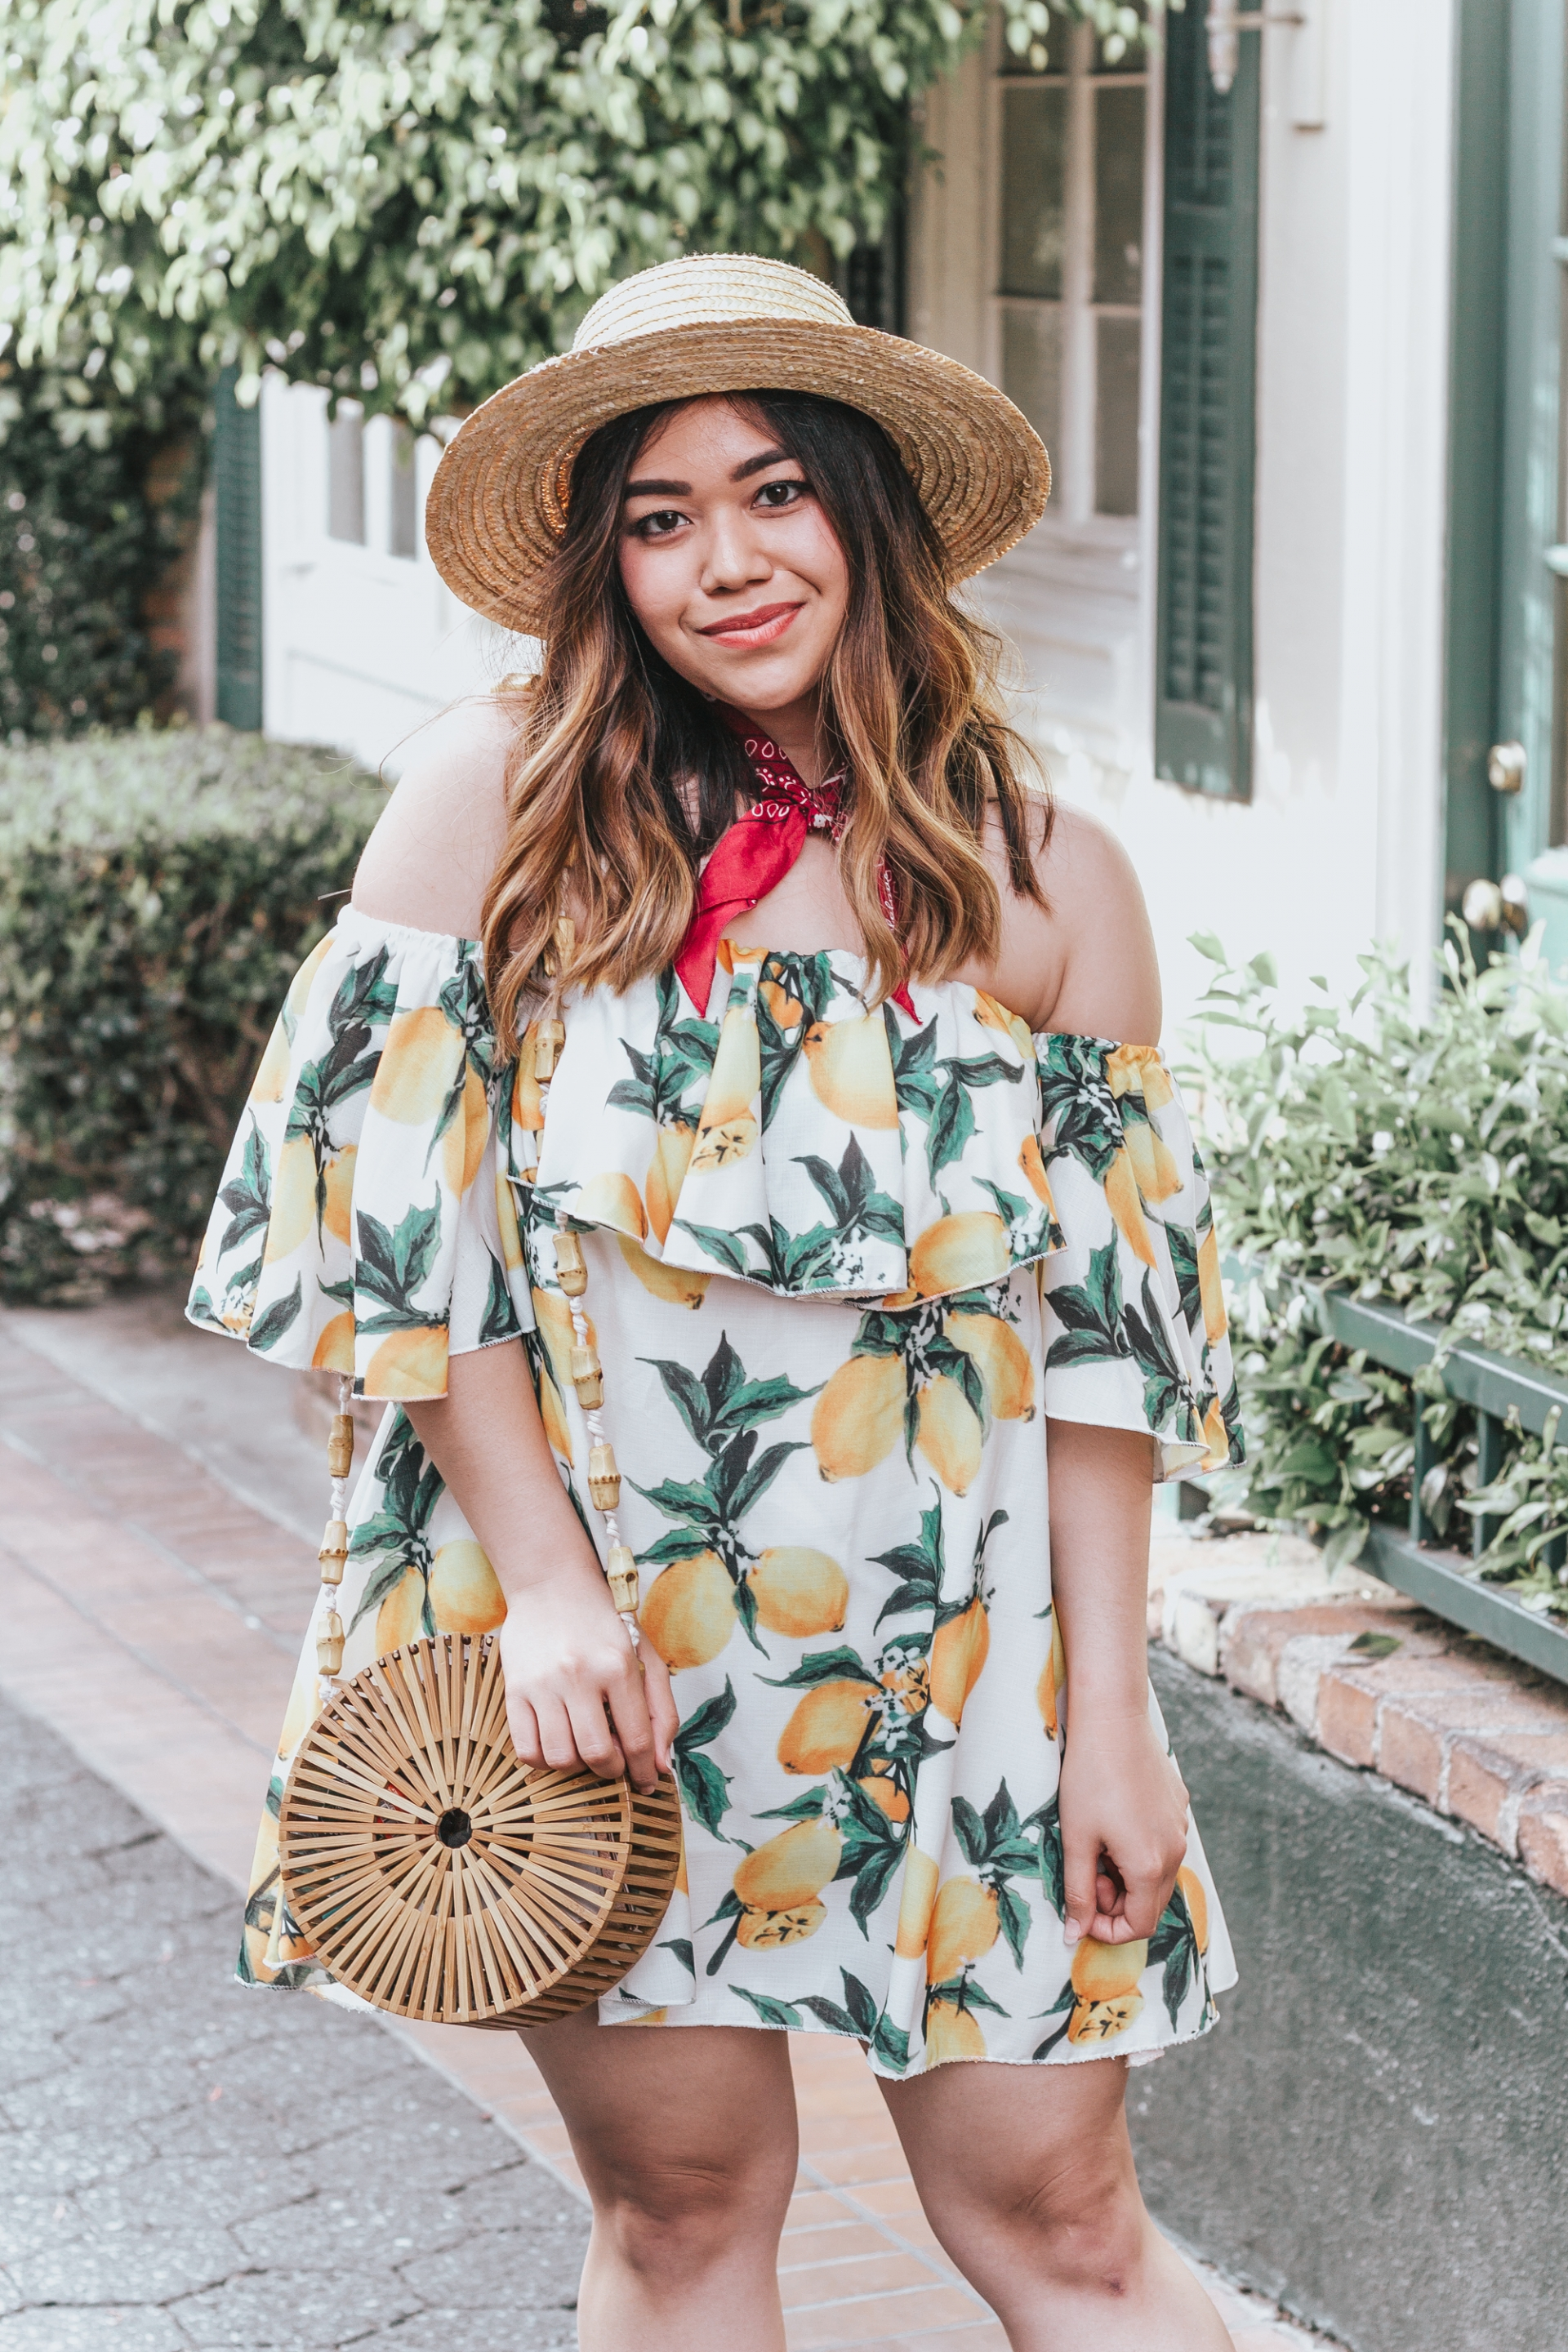 Zaful Off The Shoulder Lemon Print Dress Cult Gaia Luna Dupe Bag Bamboo Round Bag Pink Straw Hat Personalized Red Bandana